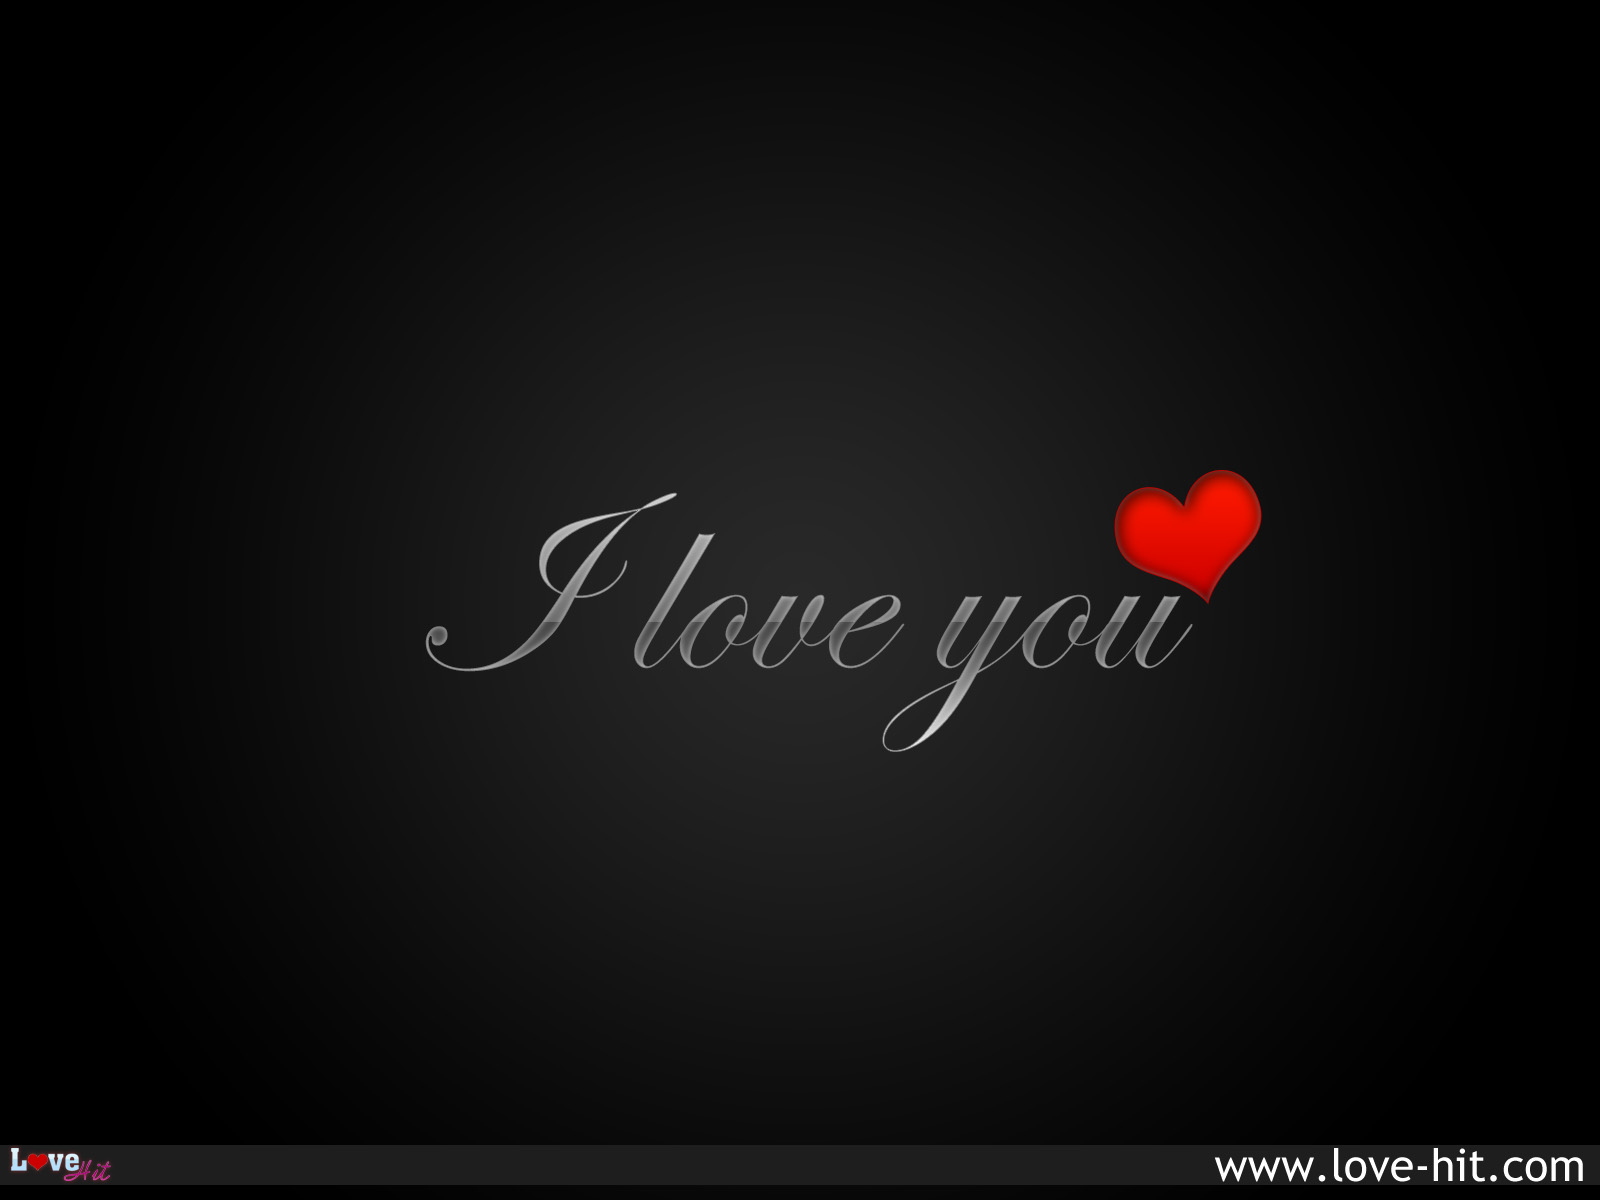 I Love you- silver text